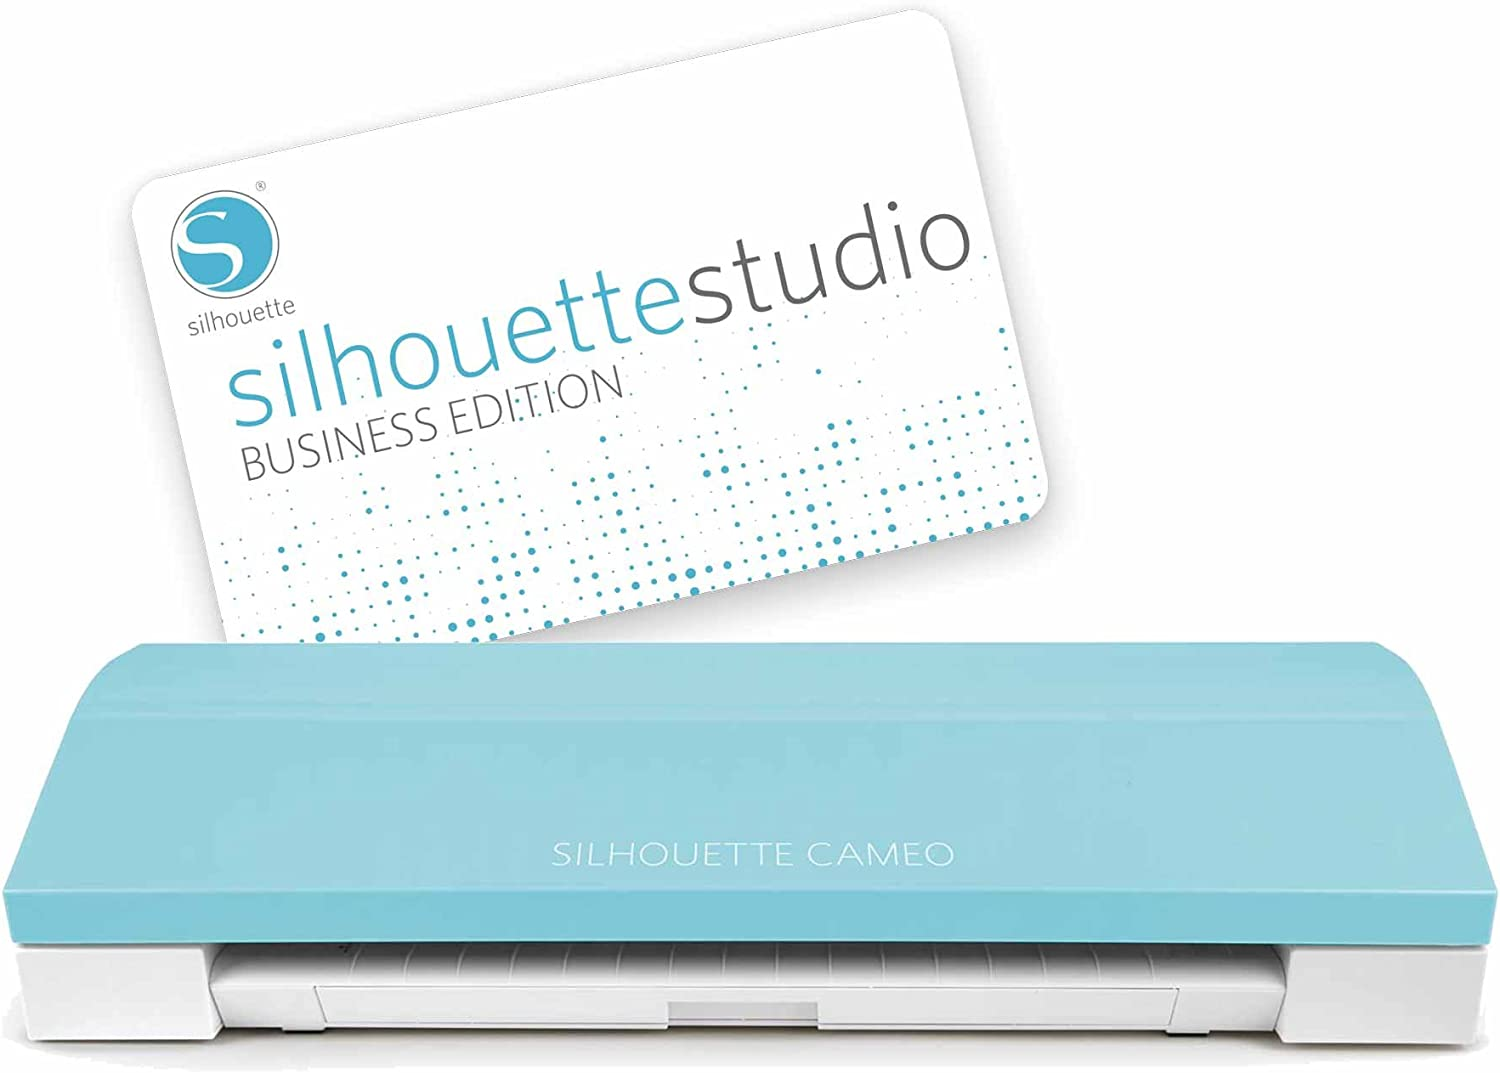 Silhouette Cameo 3 Teal + Business Edition Software: Amazon.es ...